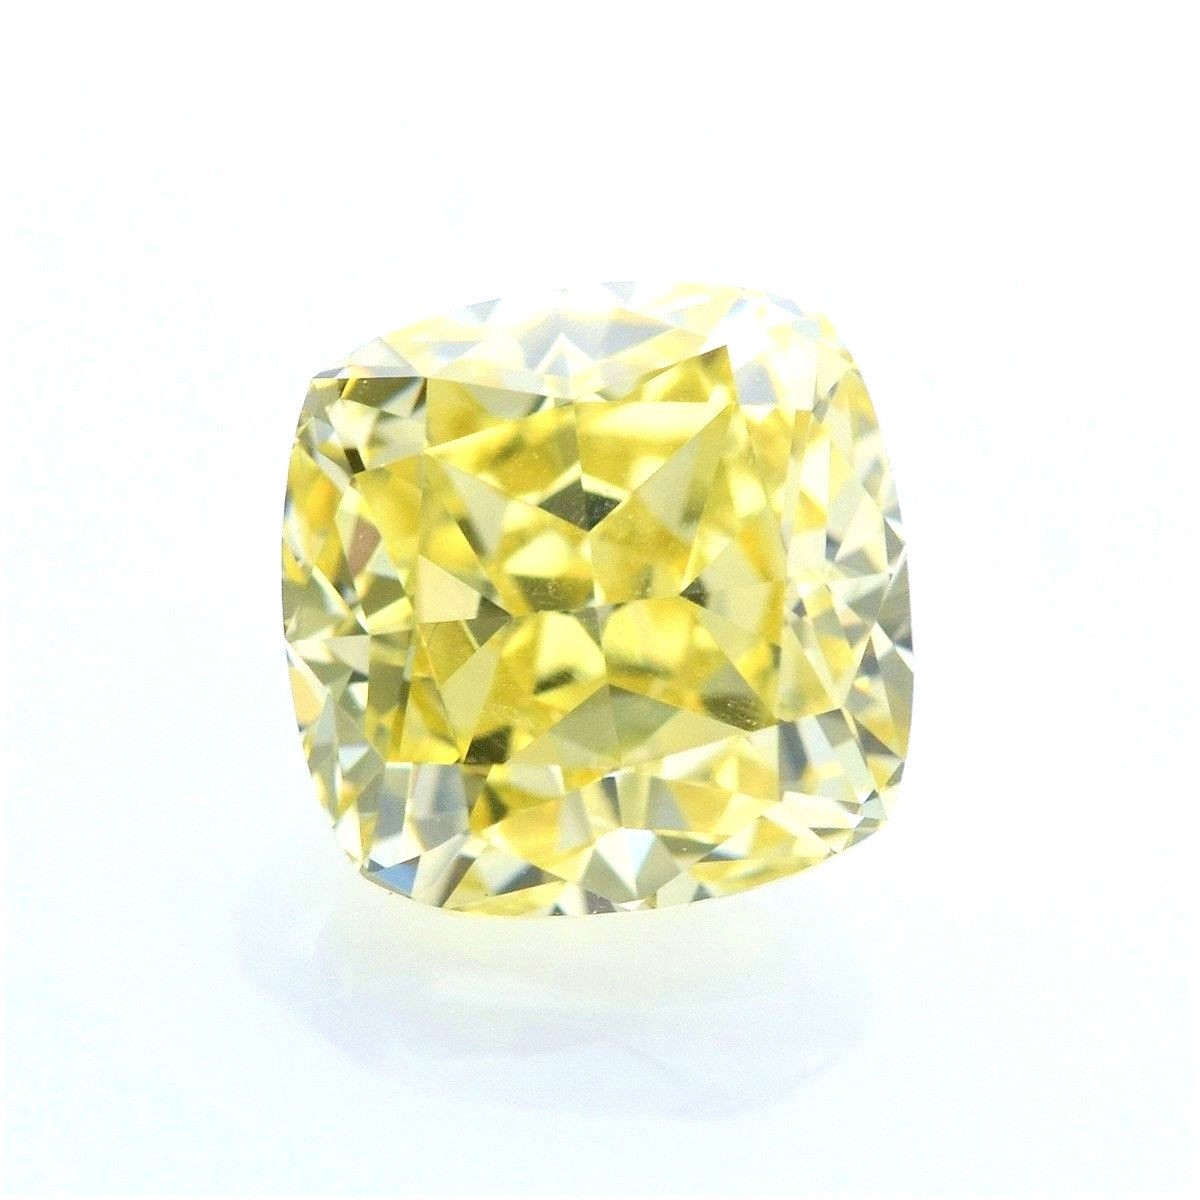 tiffany canary jewelry diamonds co yellowdiamonds tiffanystory story yellow the worldoftiffany diamond discover